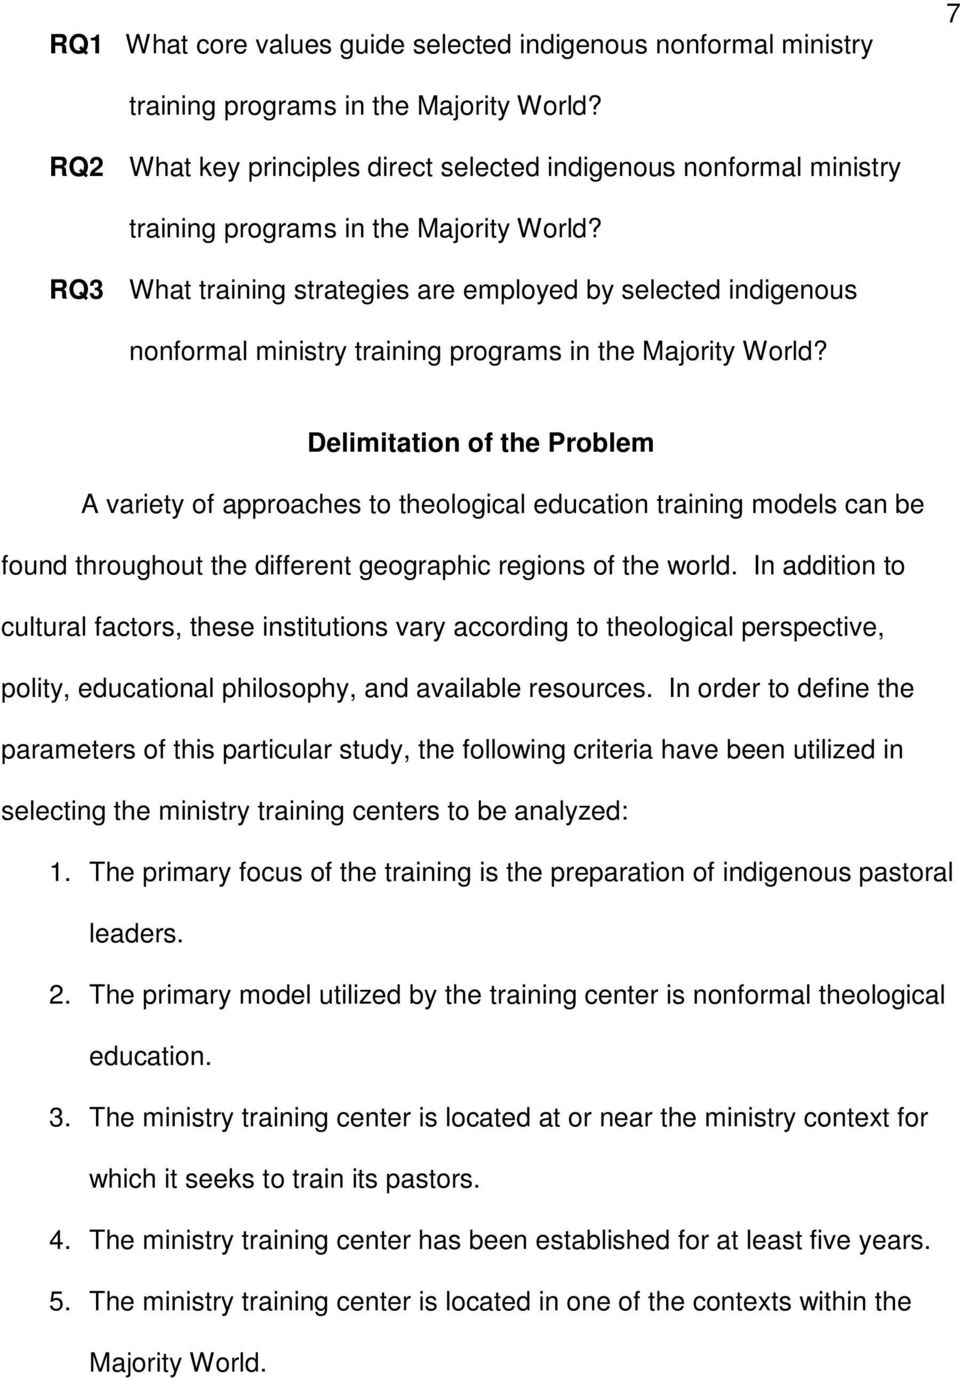 RQ3 What training strategies are employed by selected indigenous nonformal ministry training programs in the Majority World?